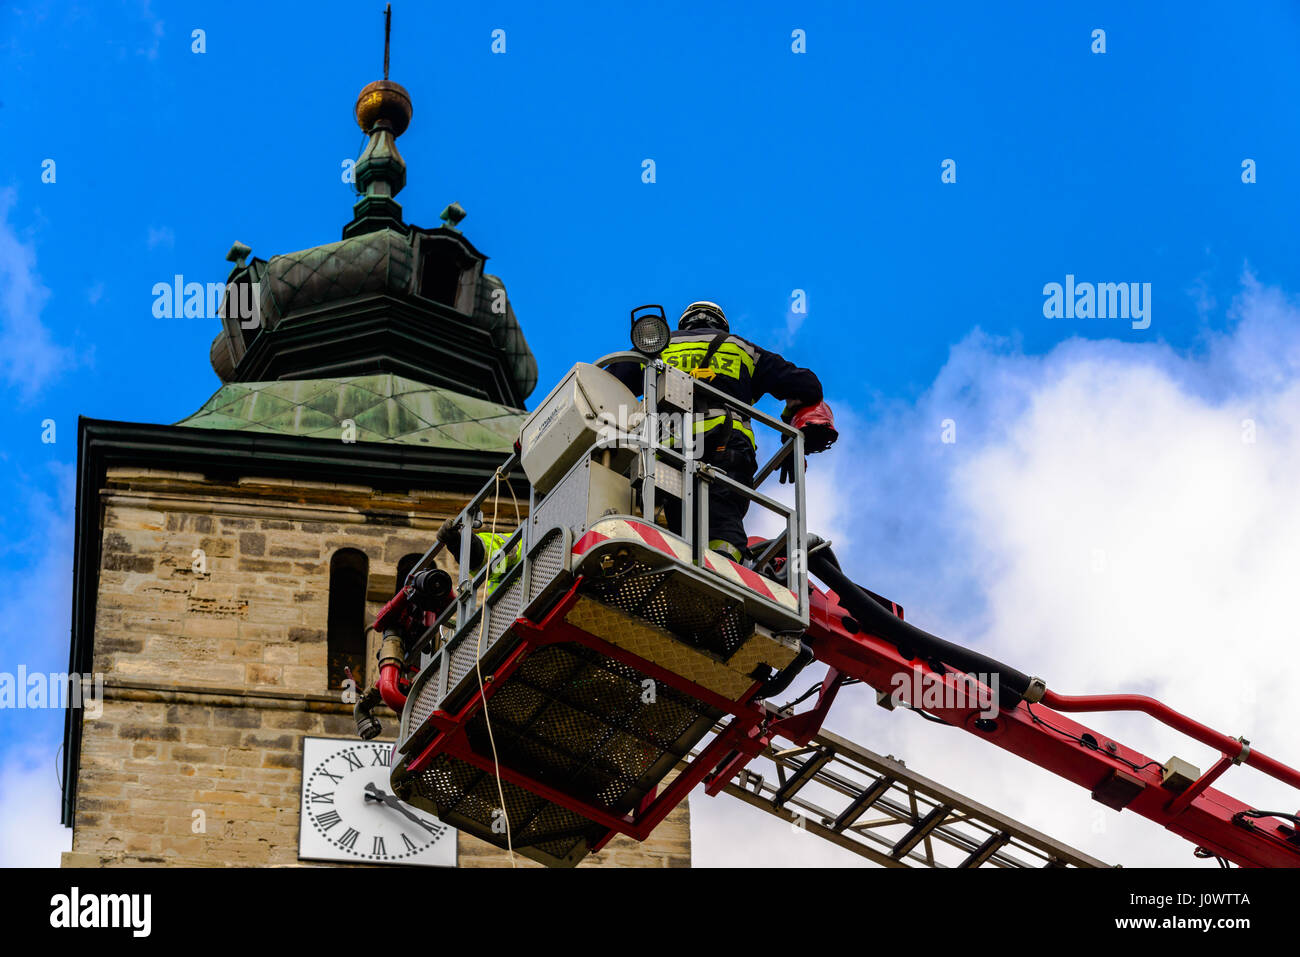 Firebrigade on high altitude action. - Stock Image